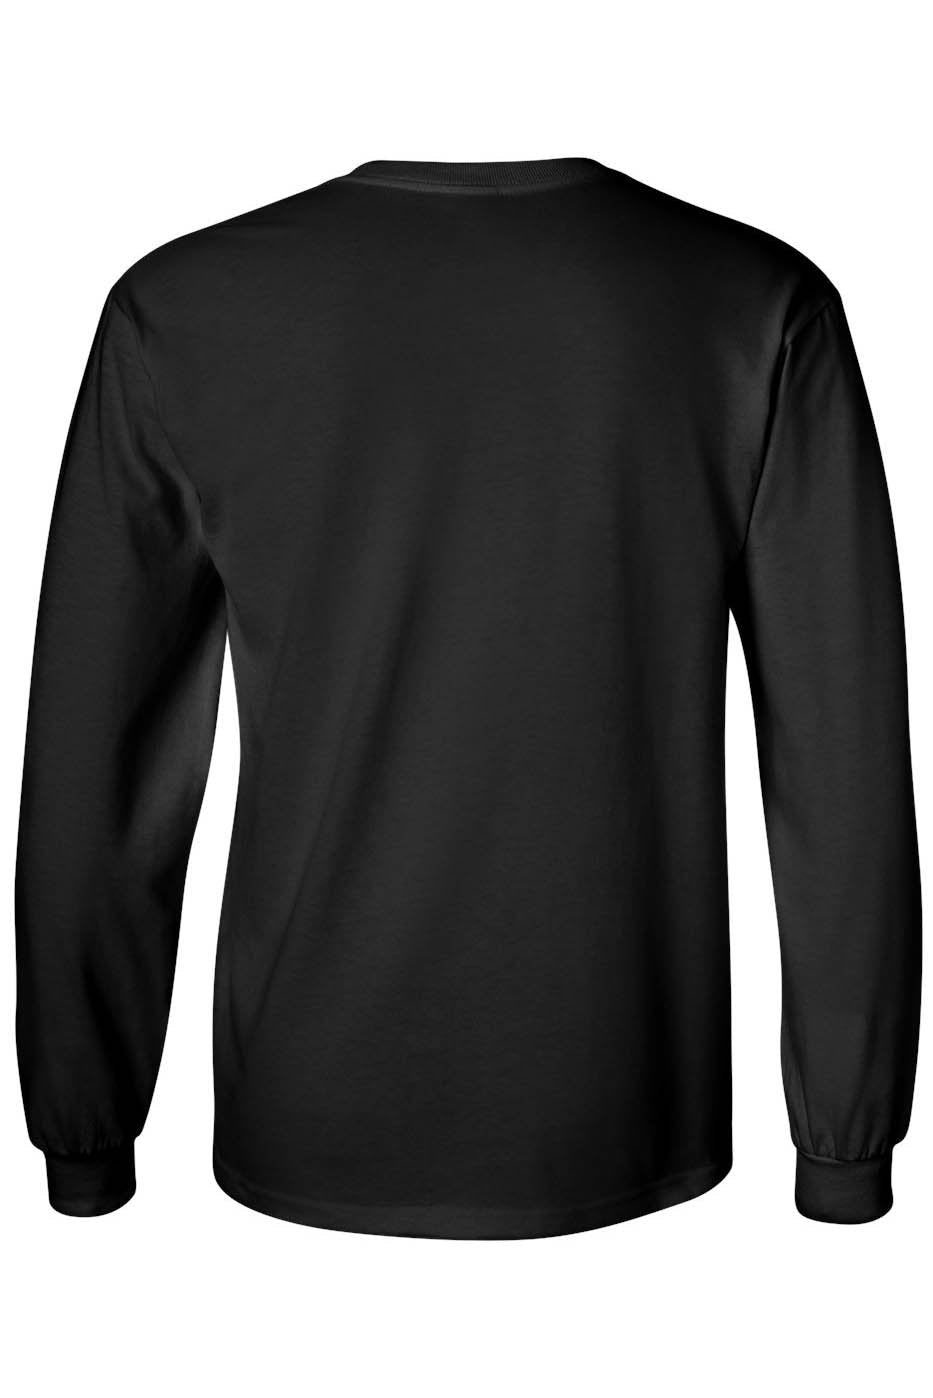 Men's/Unisex Father's Day Allstar Dad  Long Sleeve T-shirt